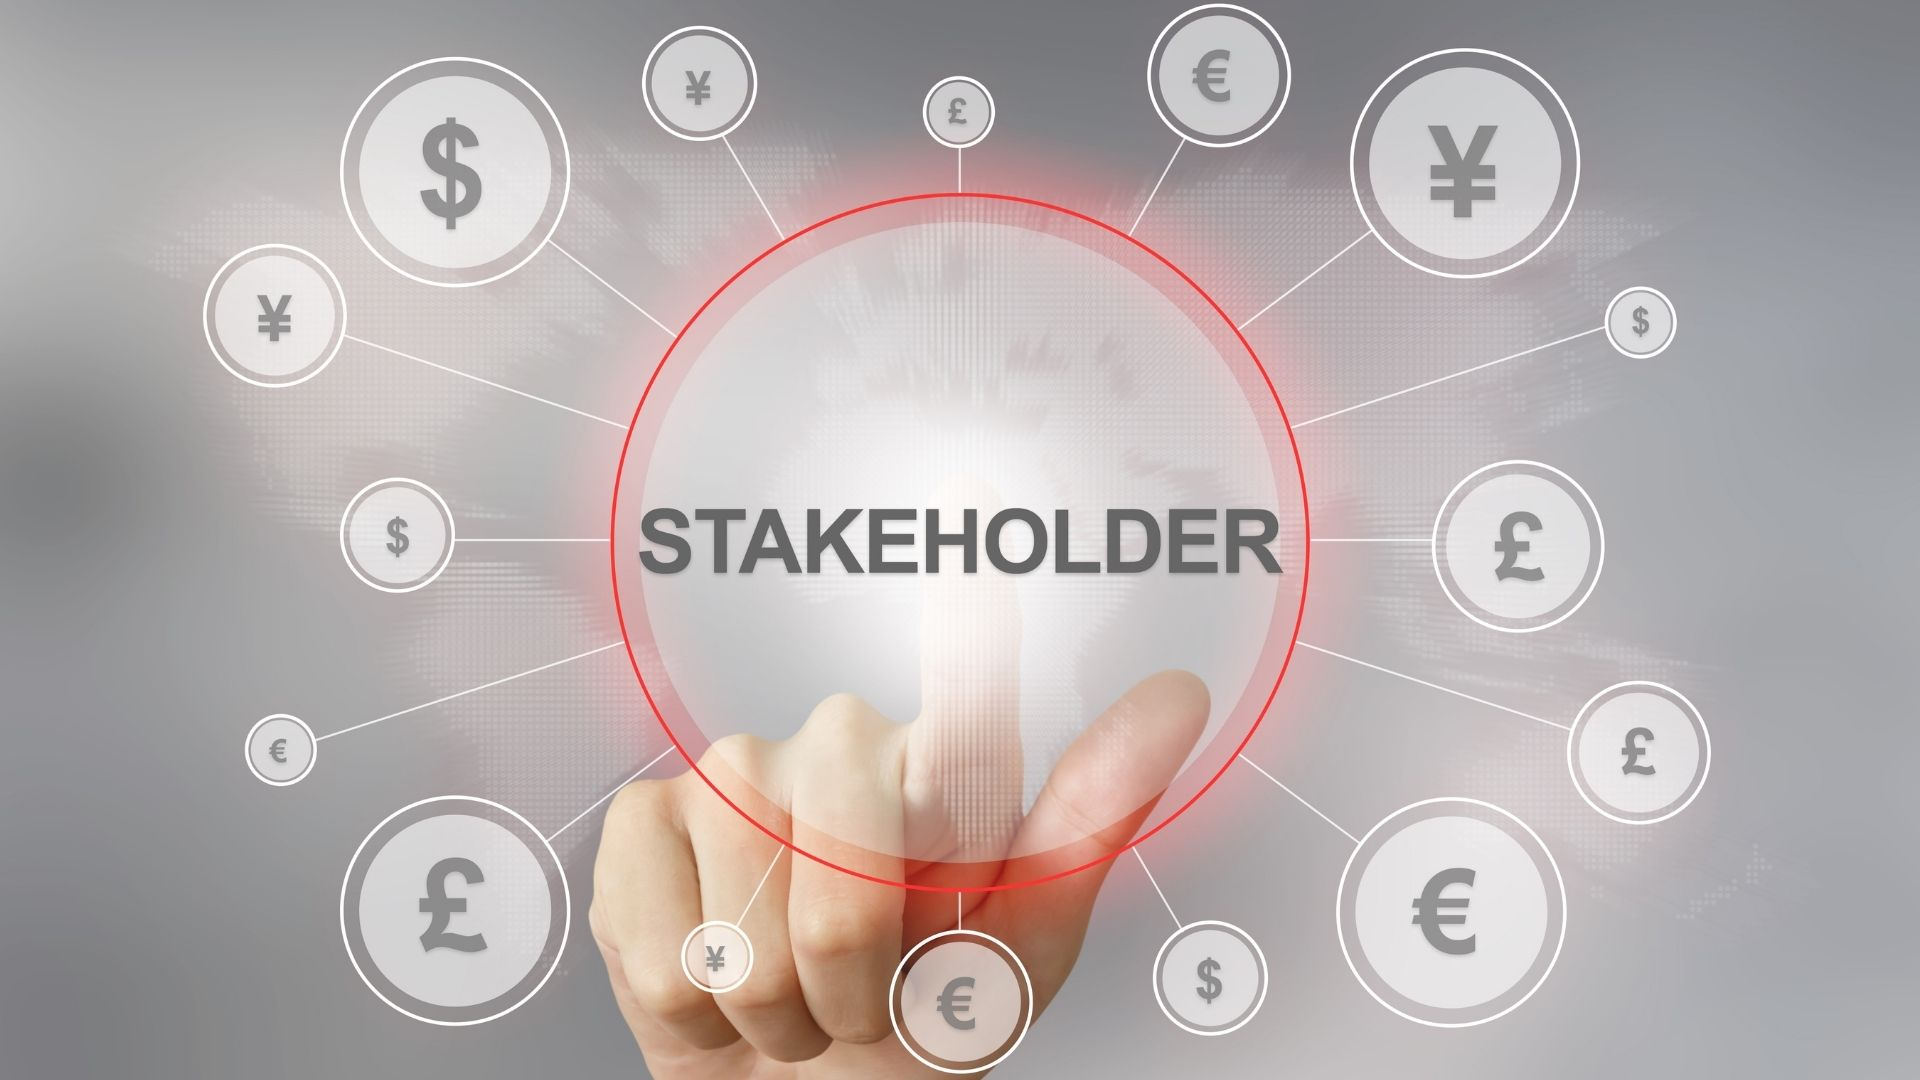 Can Covid-19 provide opportunities to change stakeholder relationships for good? 11